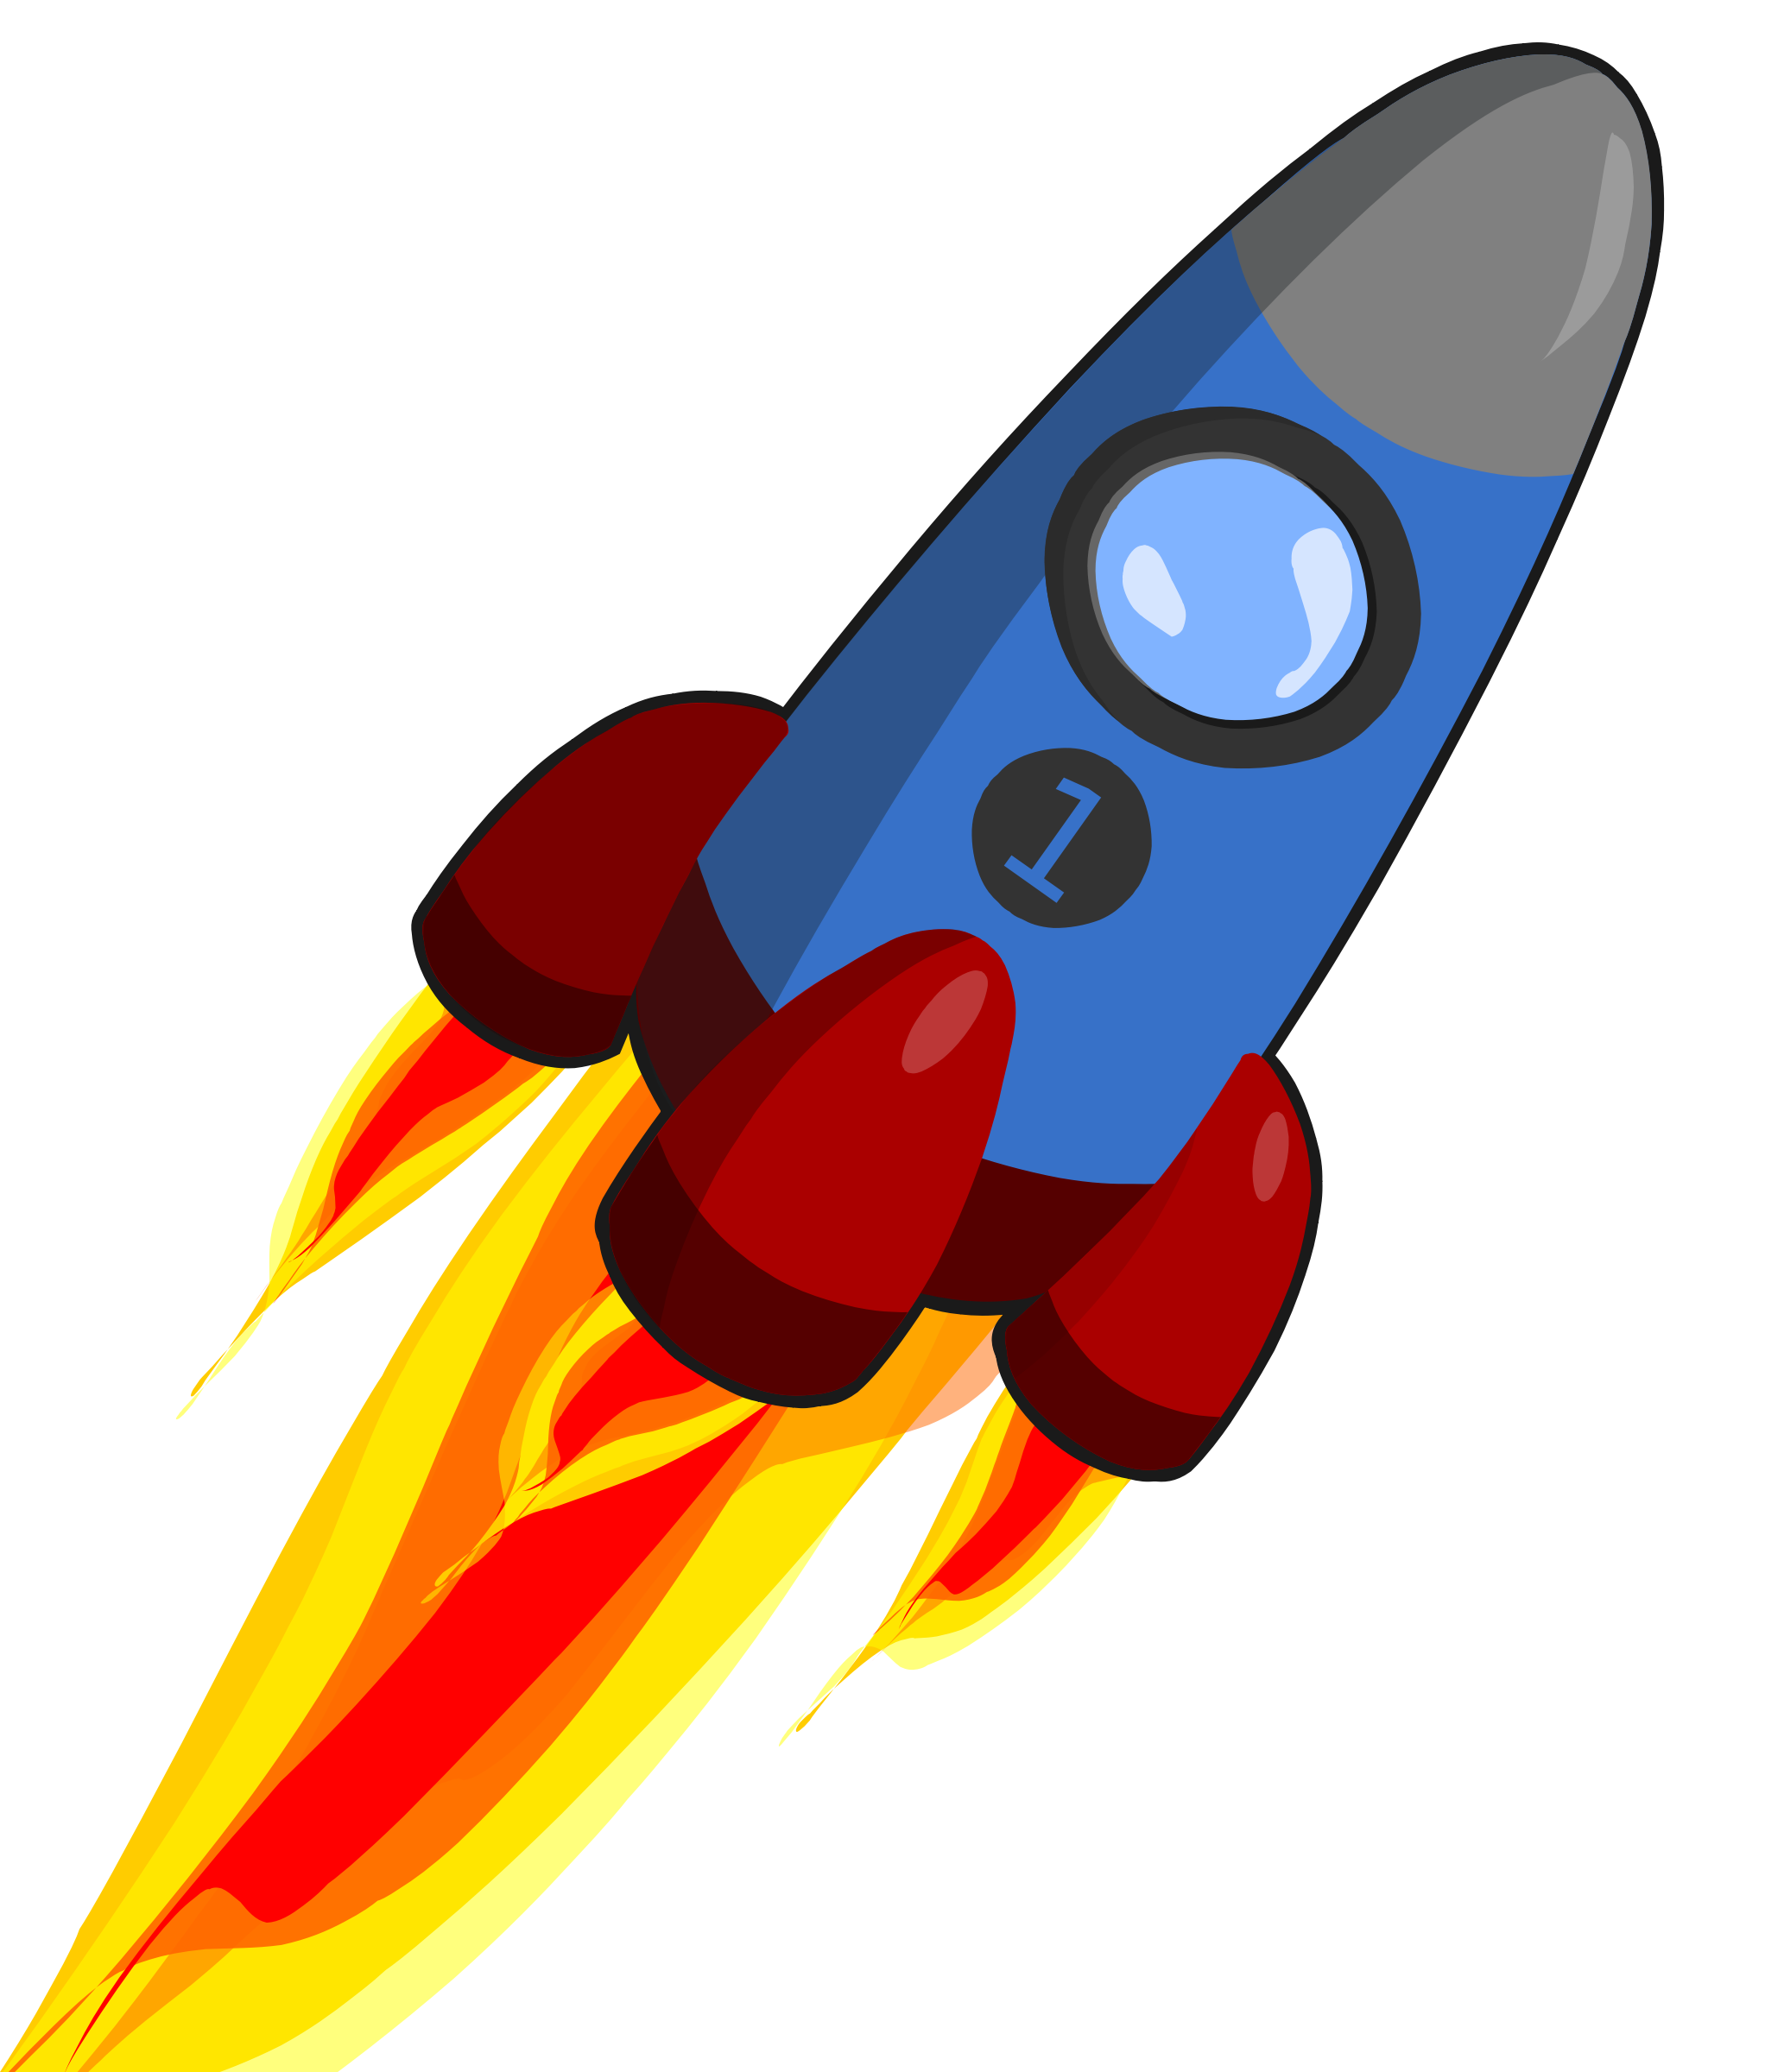 Animation of rocket blue. Spaceship clipart red